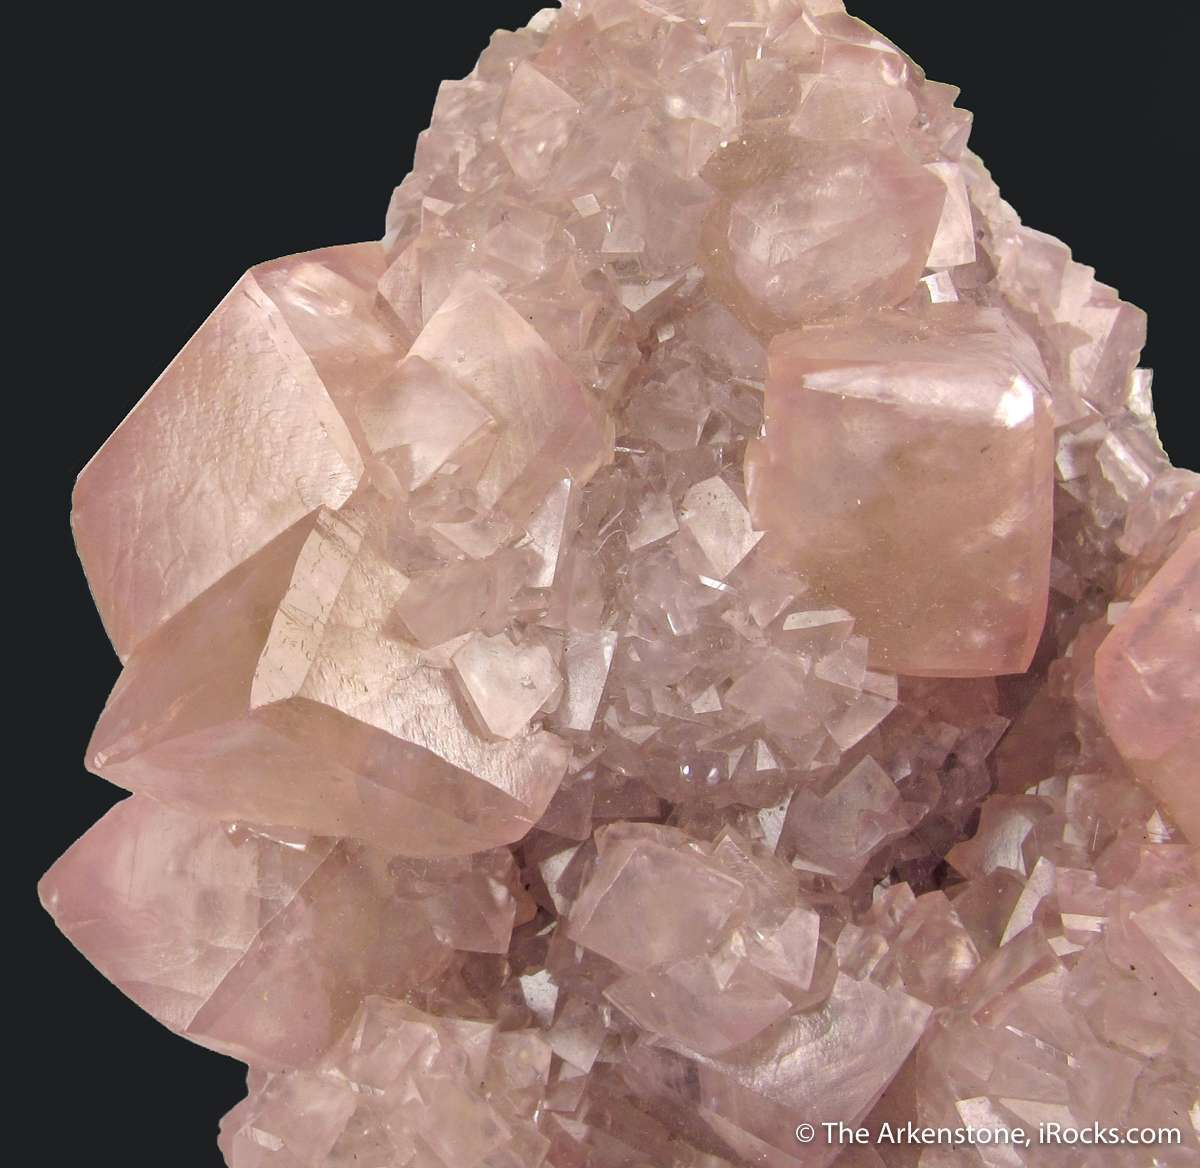 This crystallized smithsonite Tsumeb rare habits large pink meaty